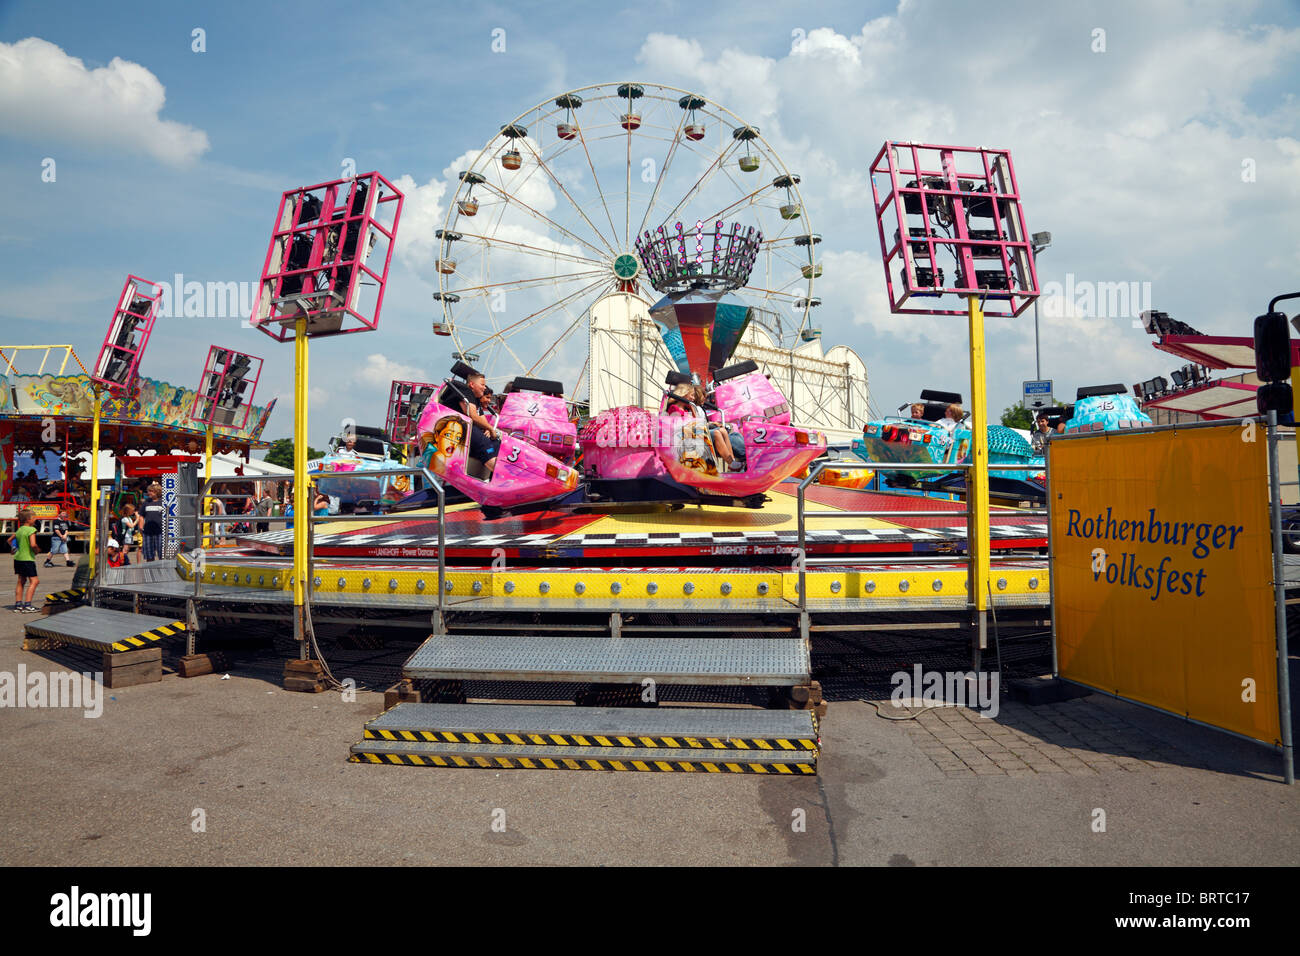 The spinning top amusement at the Rothenburger Volksfest in Rothenburg, Franconia, Bavaria, Germany Stock Photo